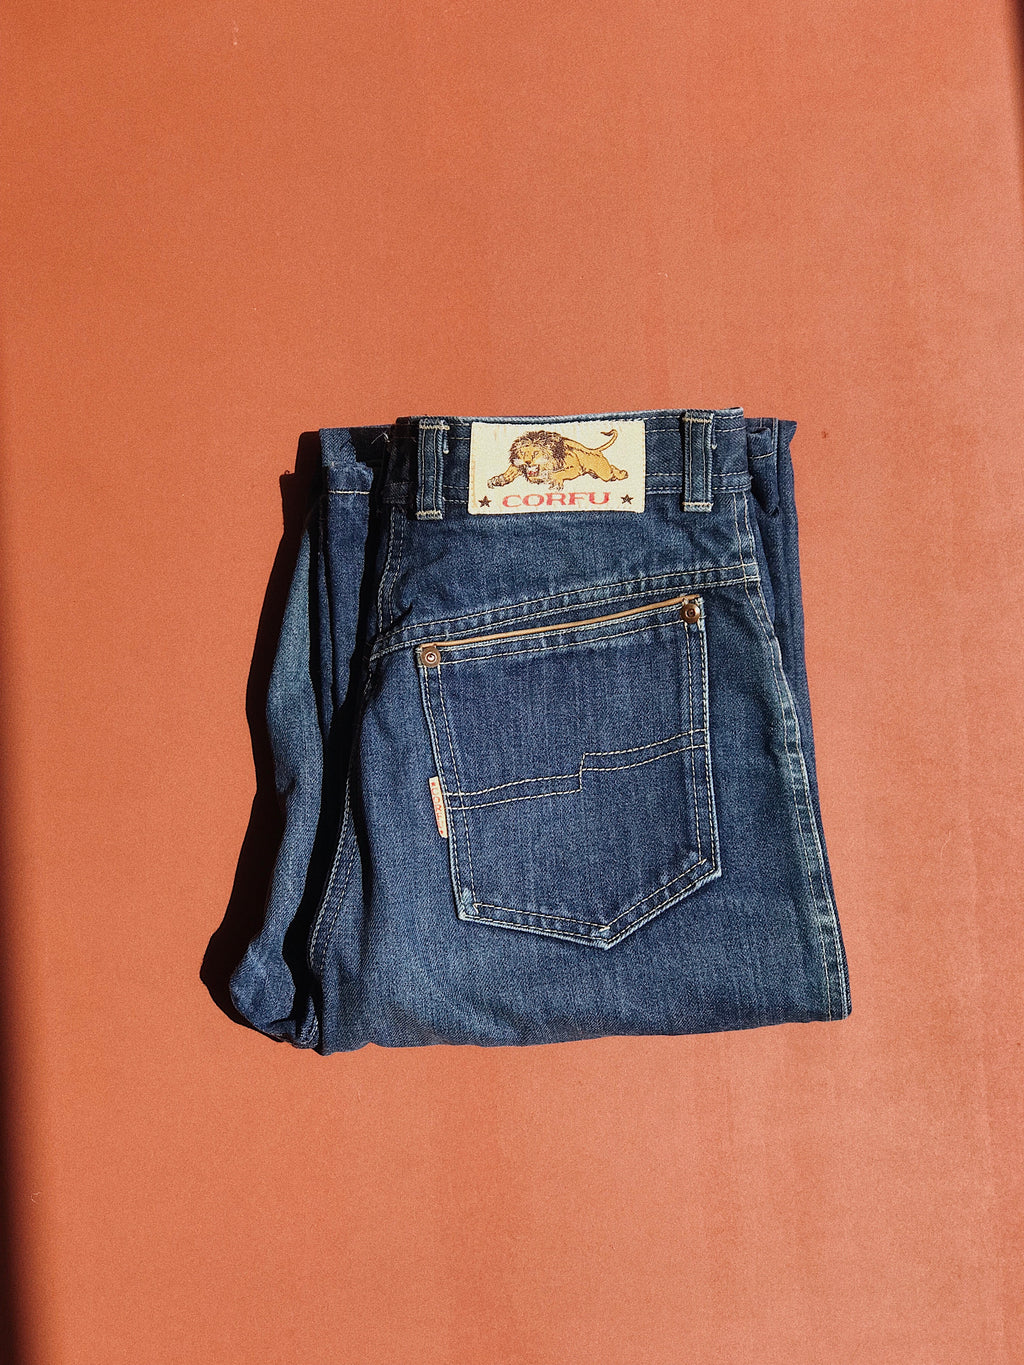 Vintage Denim High Waisted Flare Mom Jeans Size 14 (34)